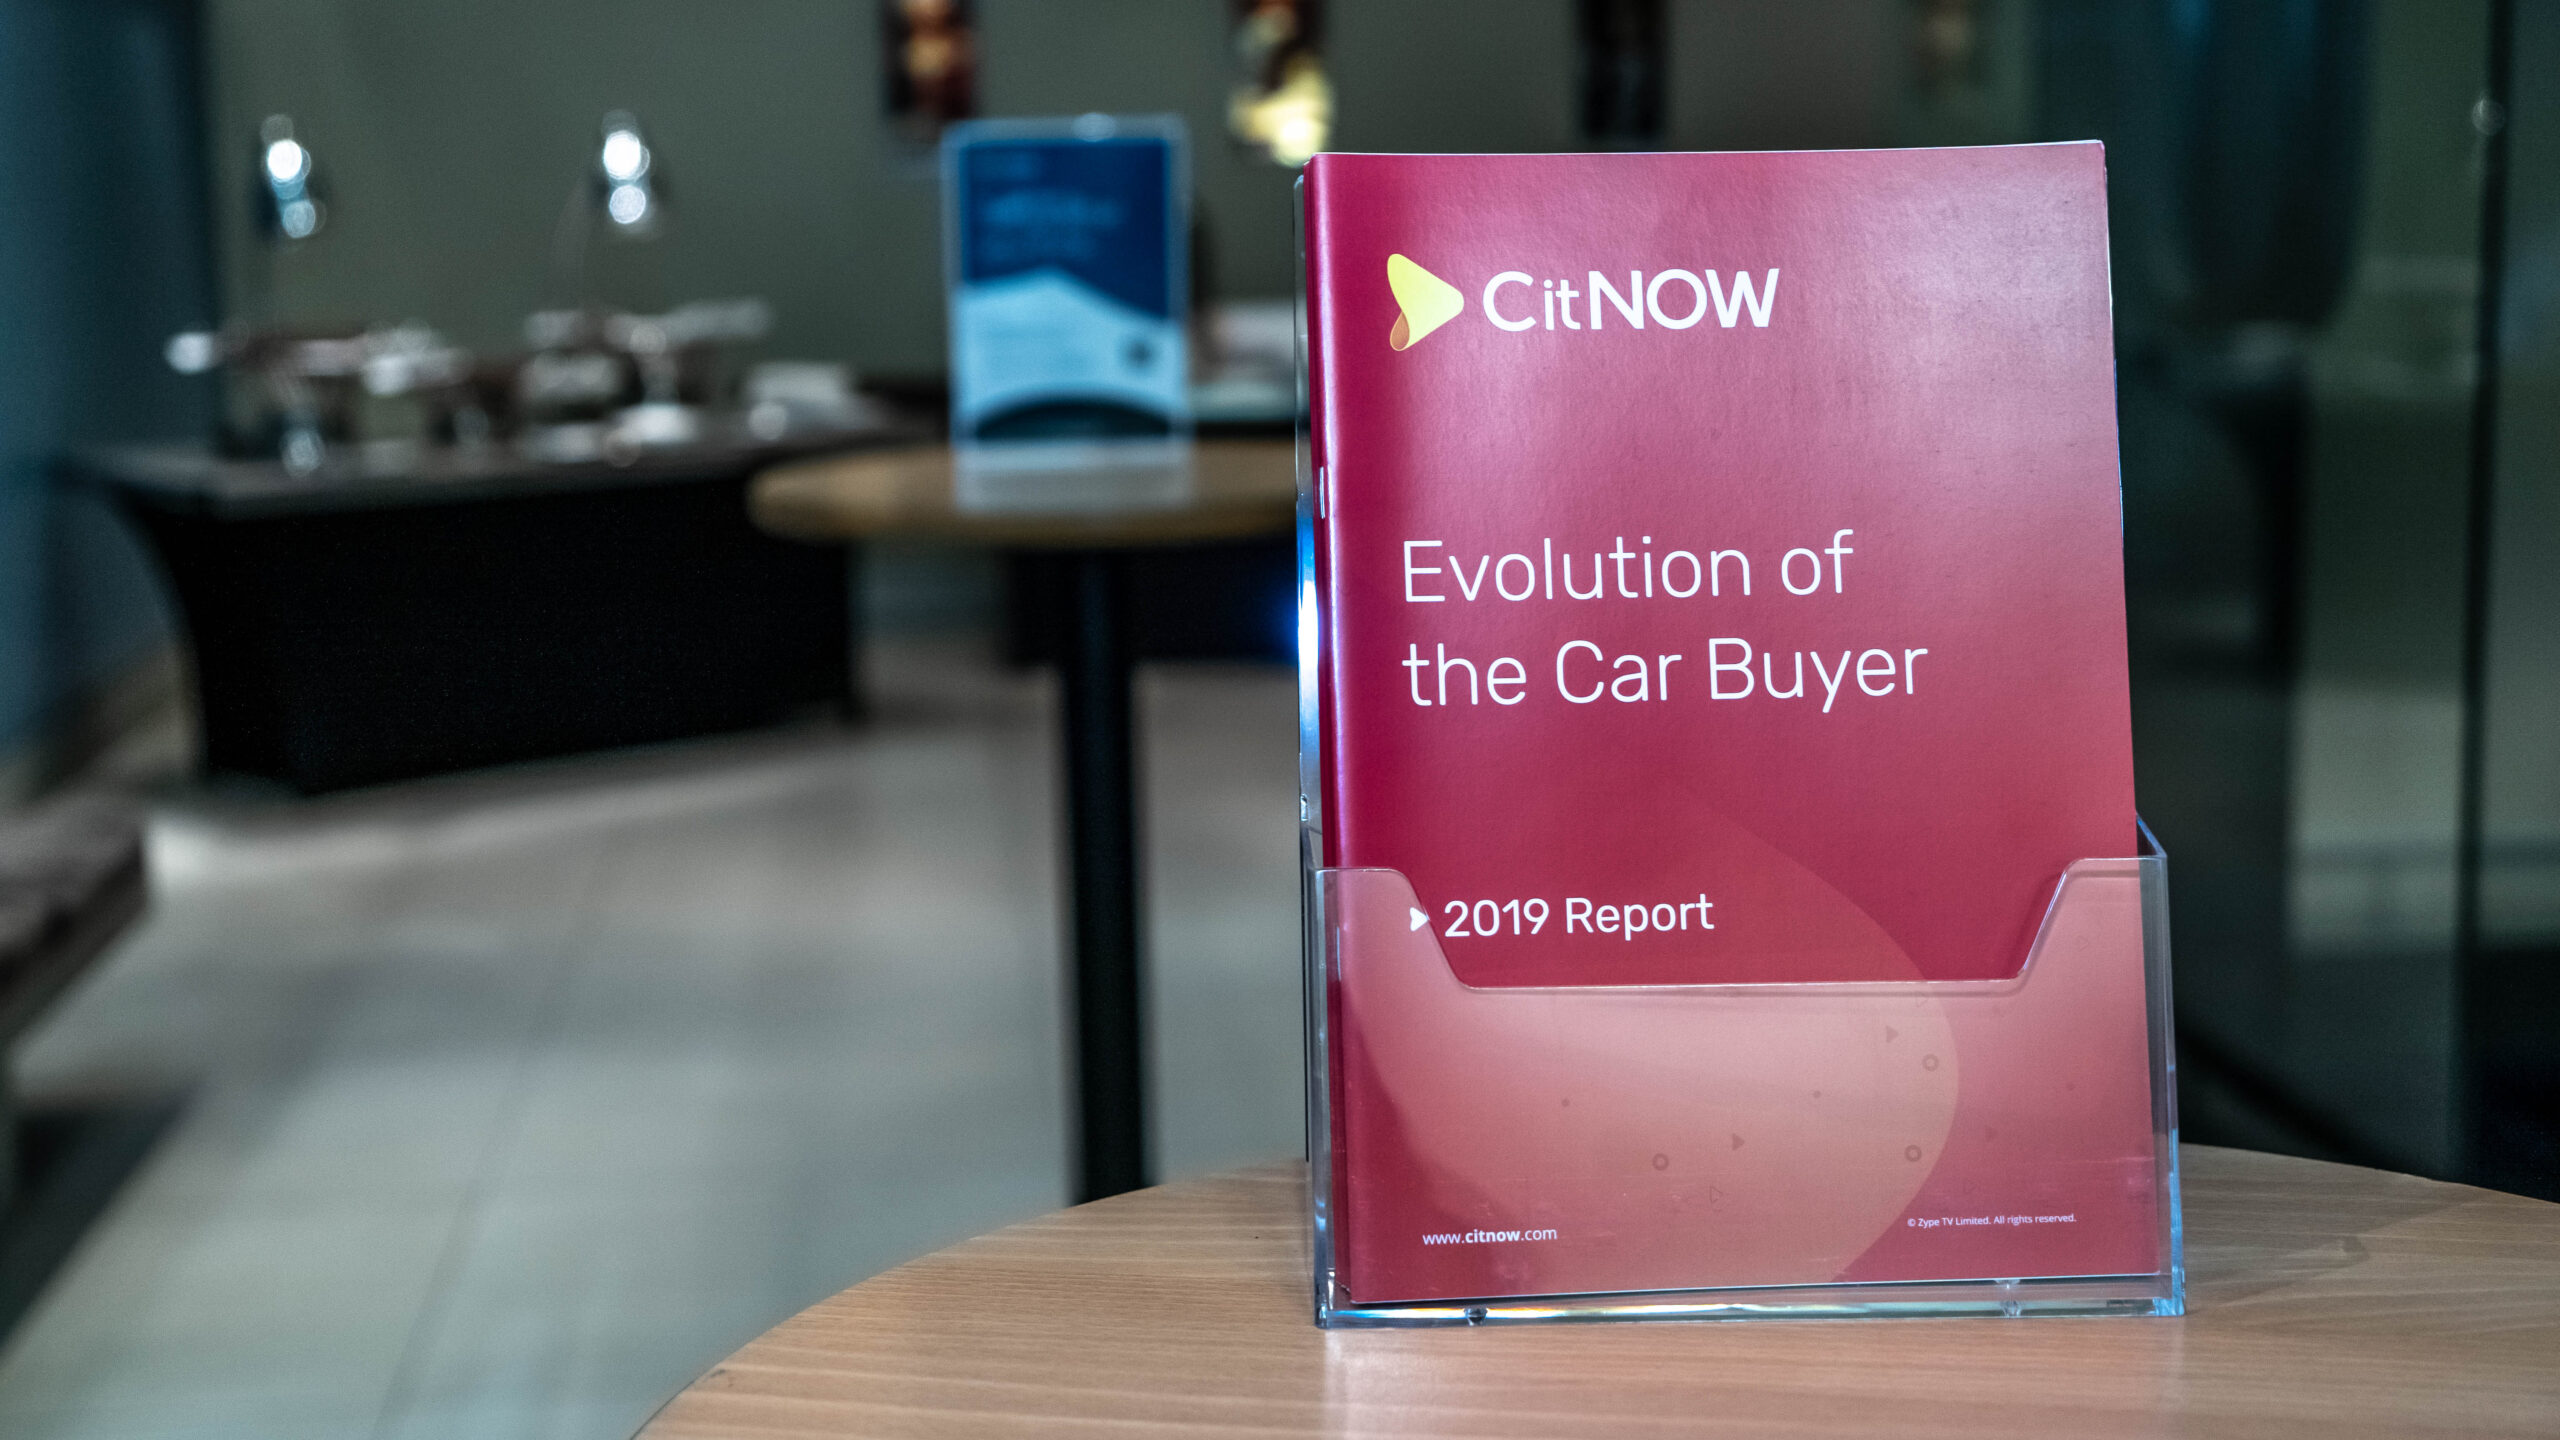 Evolution of the car buyer report